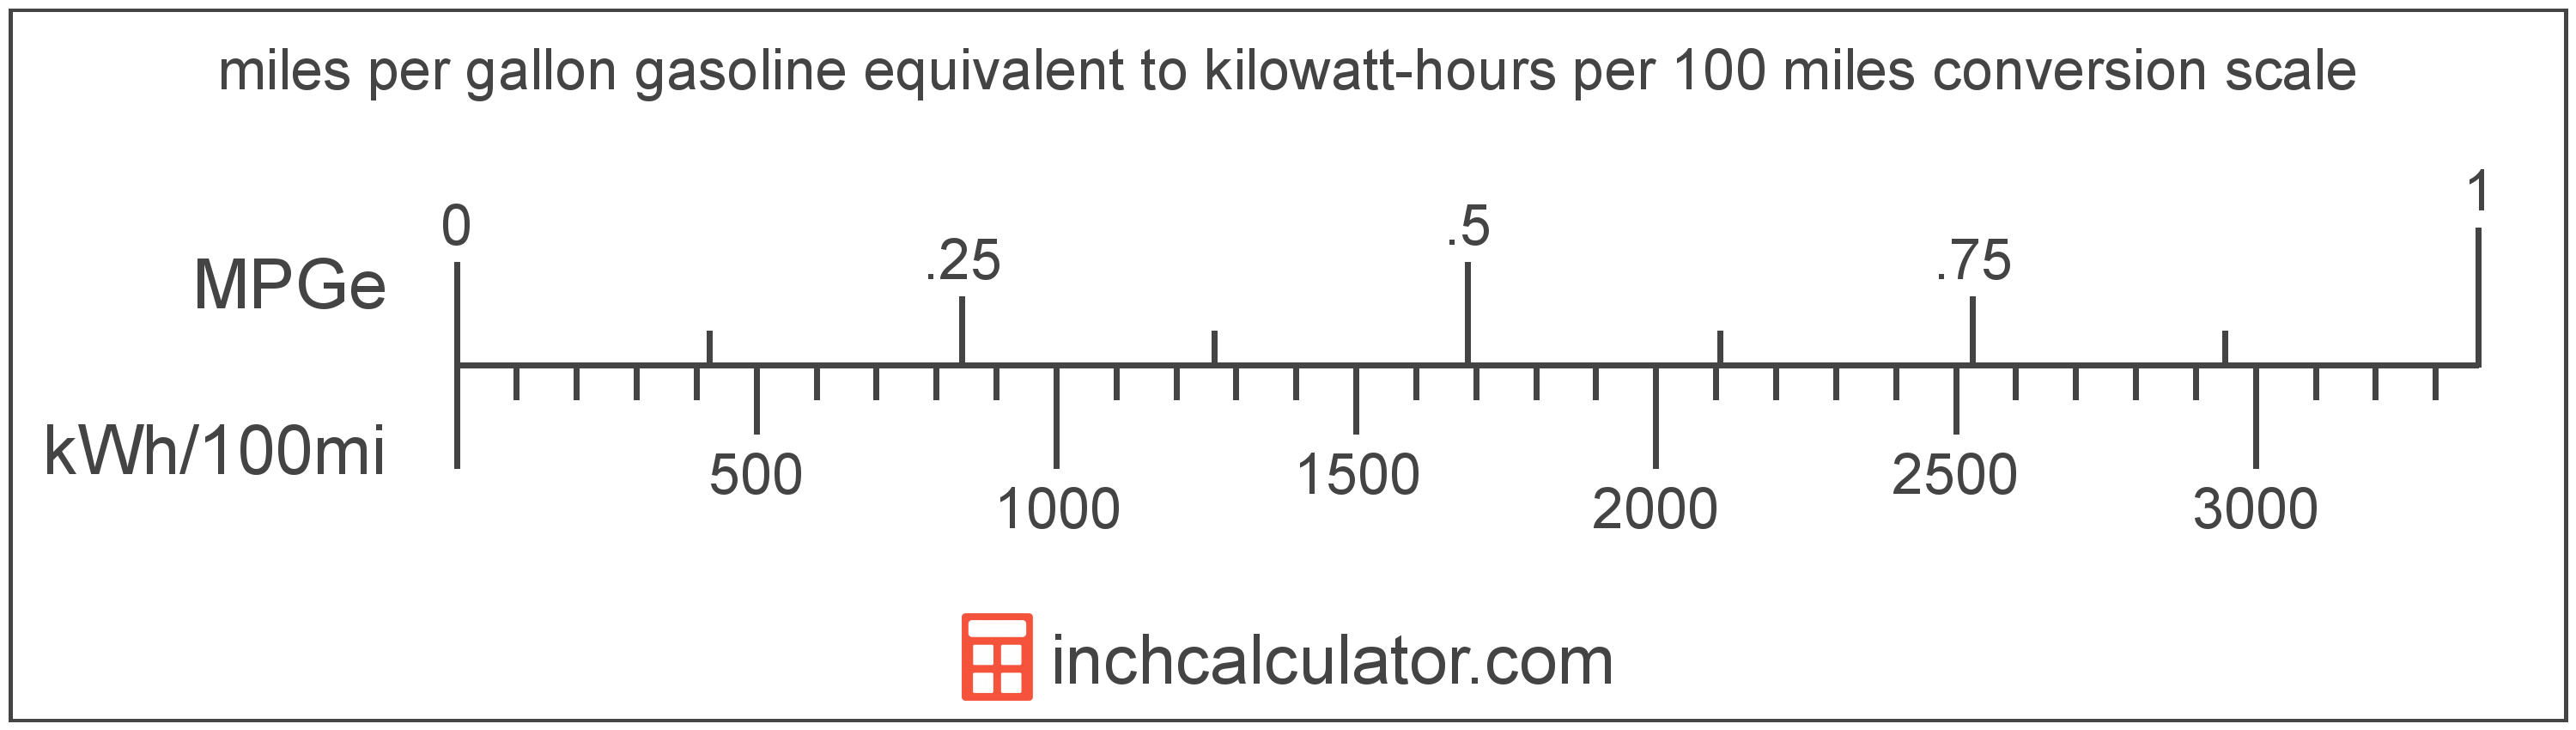 conversion scale showing miles per gallon gasoline equivalent and equivalent kilowatt-hours per 100 miles electric car efficiency values